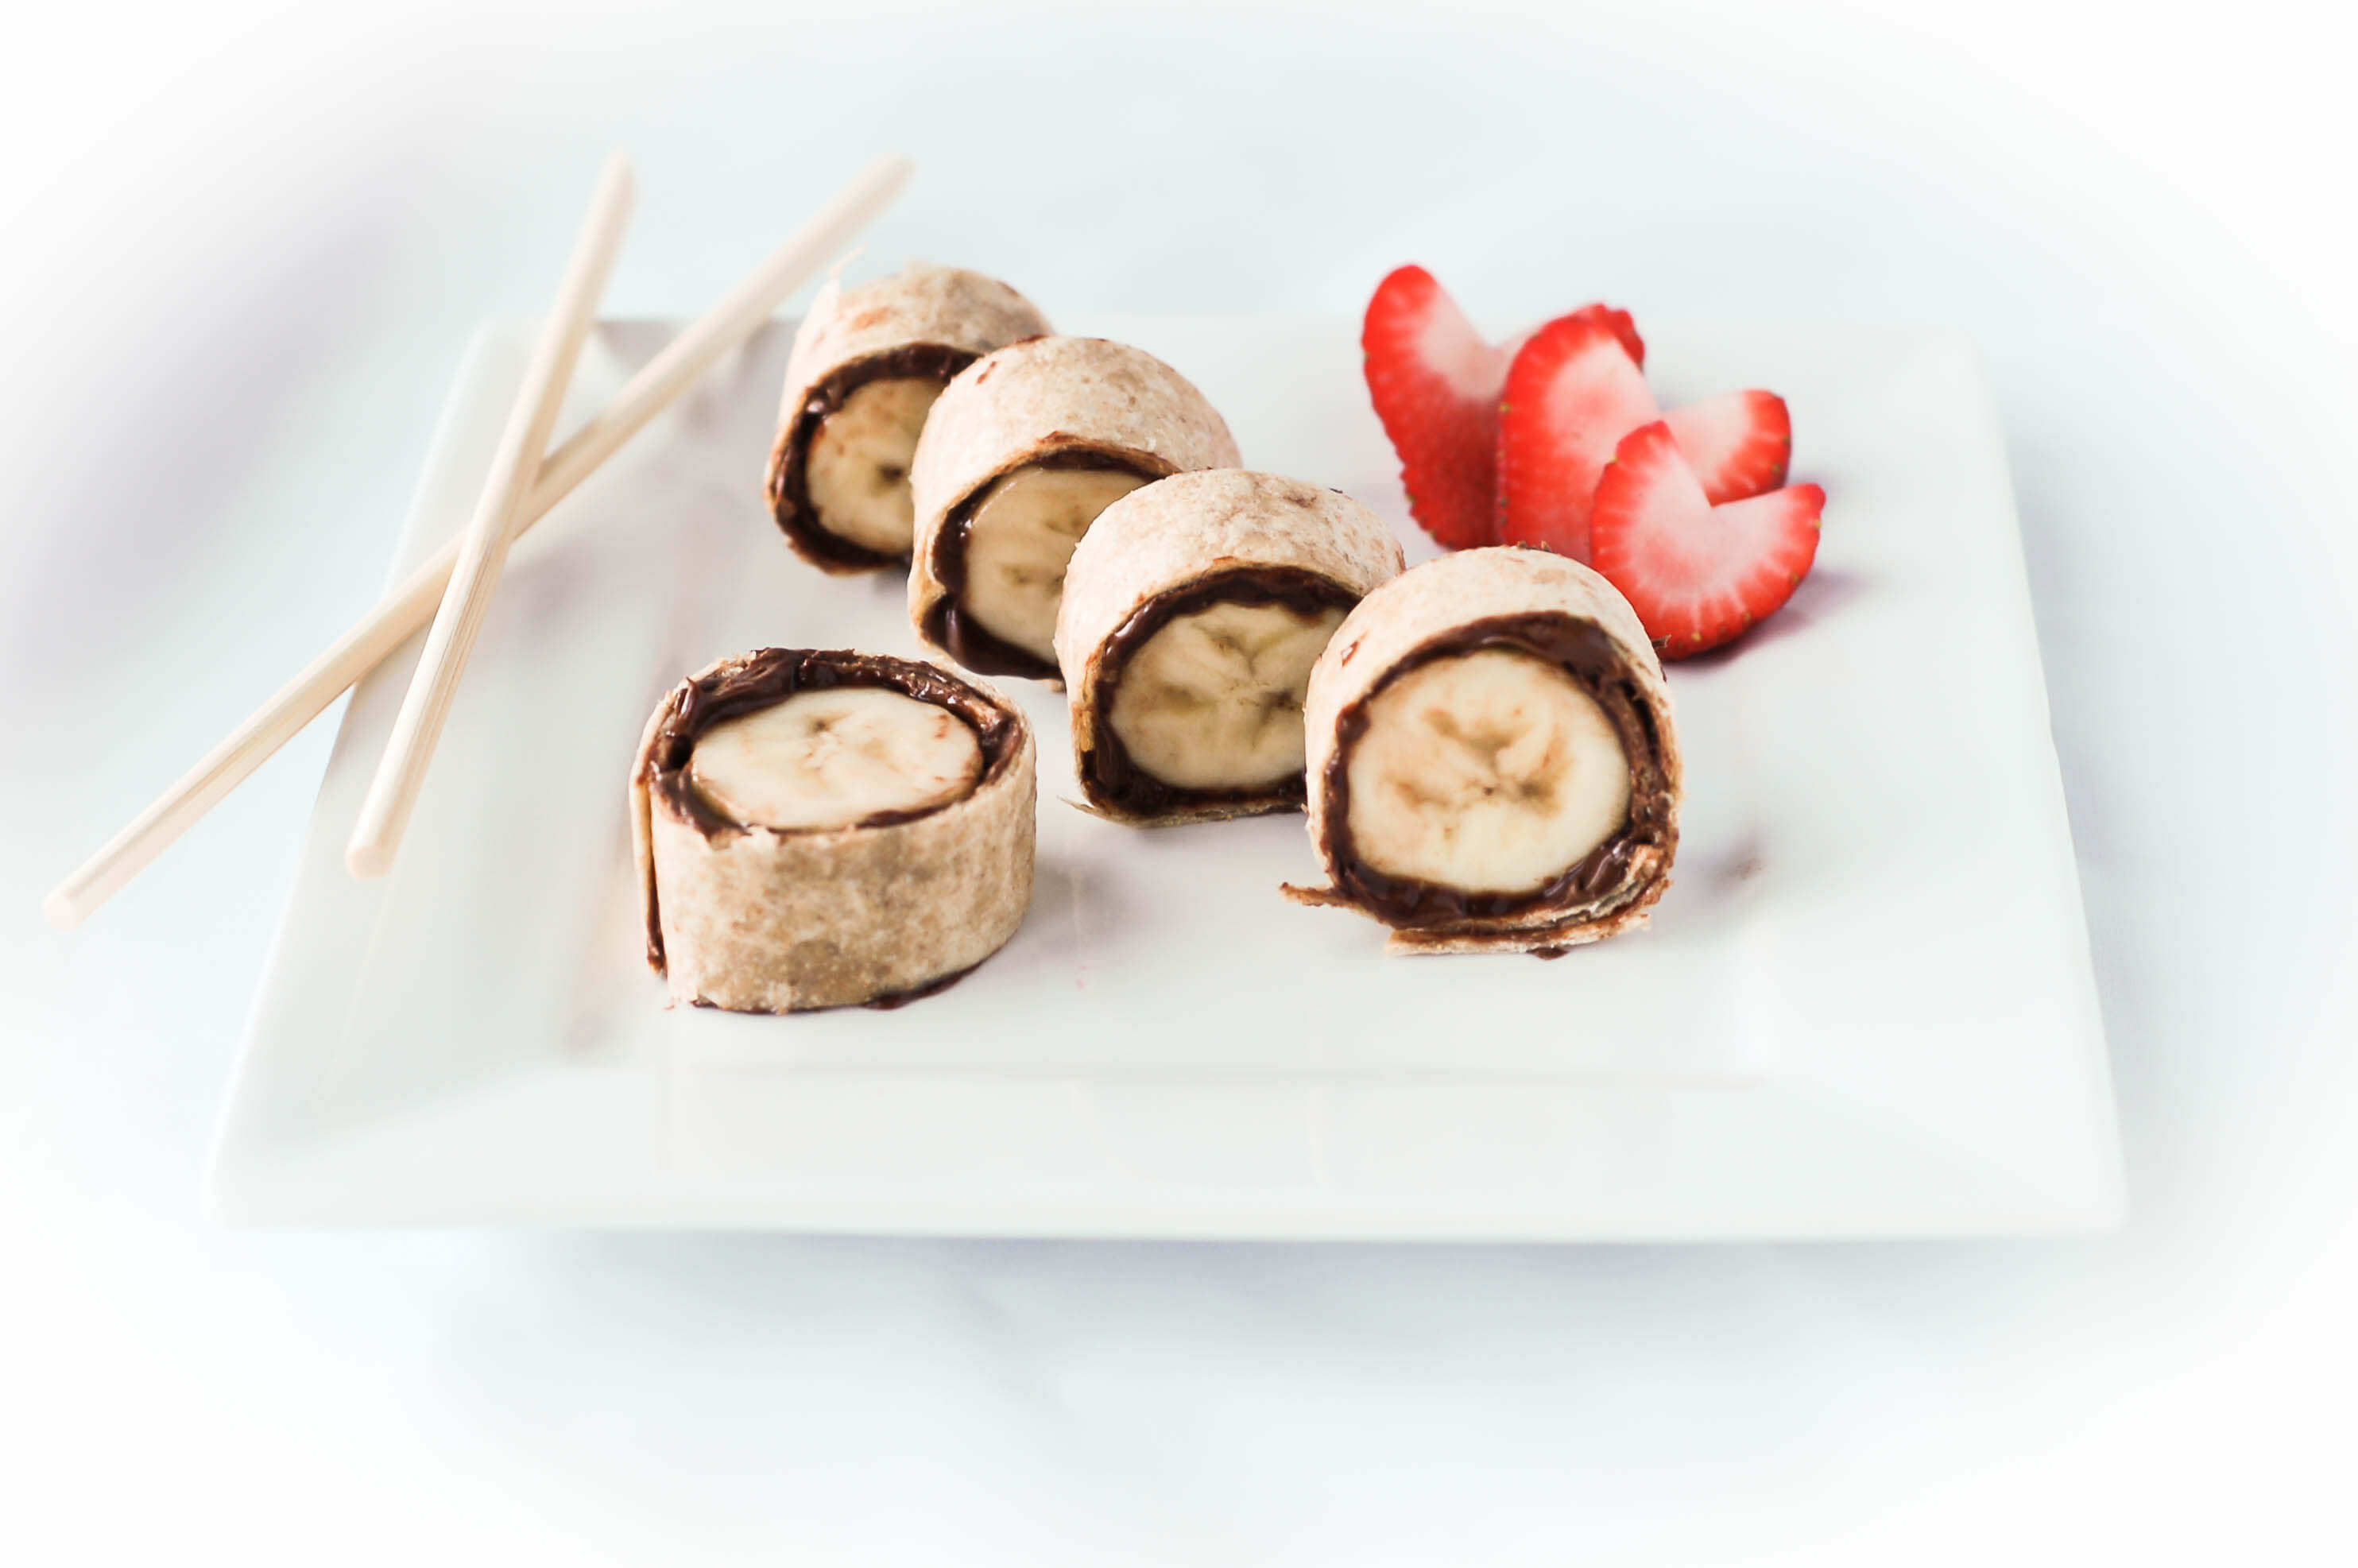 Banana sushi made with nutella and tortillas are an easy snack recipe perfect for lunch boxes via createkidsclub.com